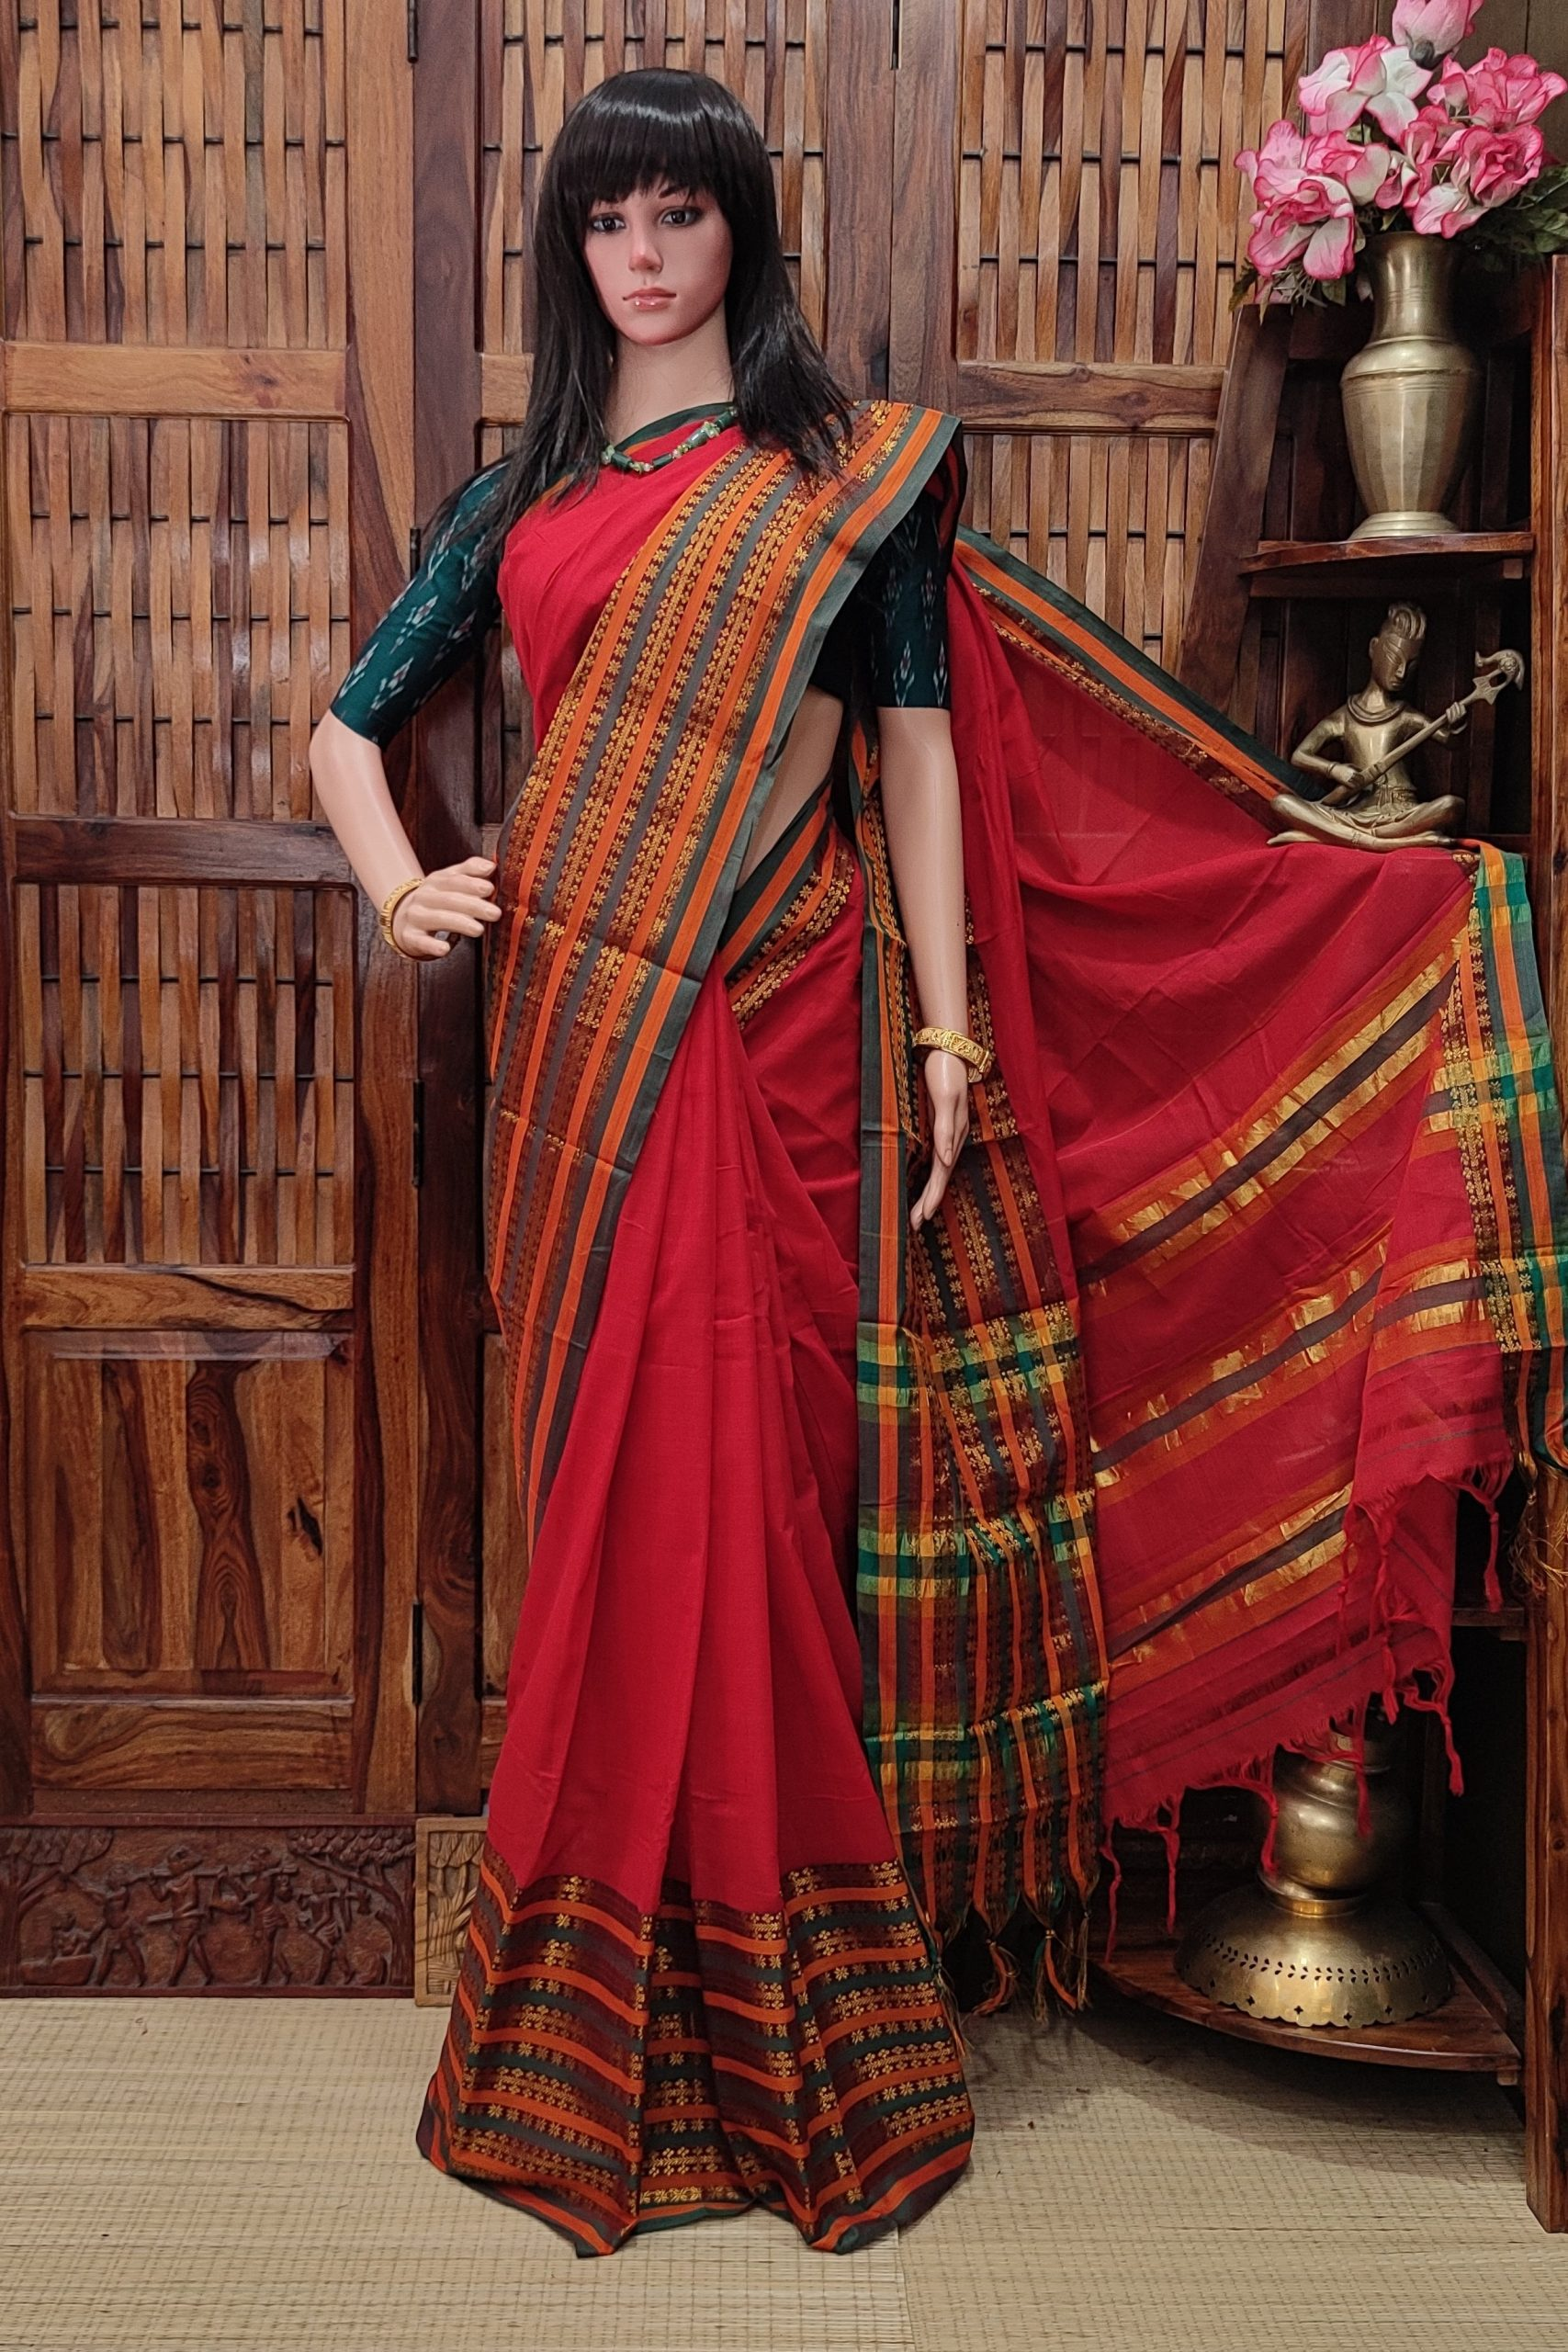 Maryada - Mercerized Pearl Cotton Saree